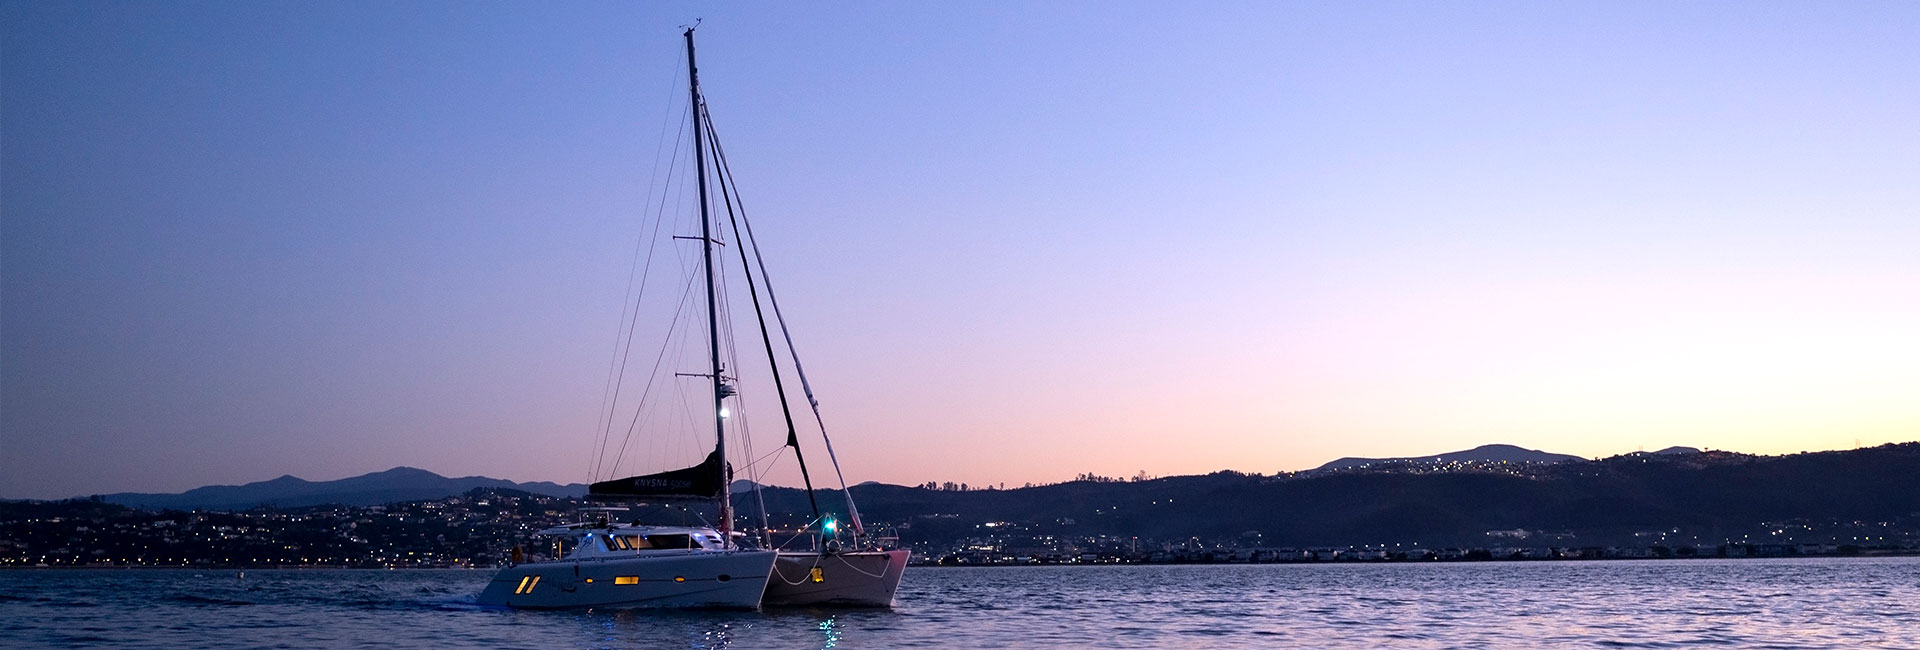 Yacht in sunset